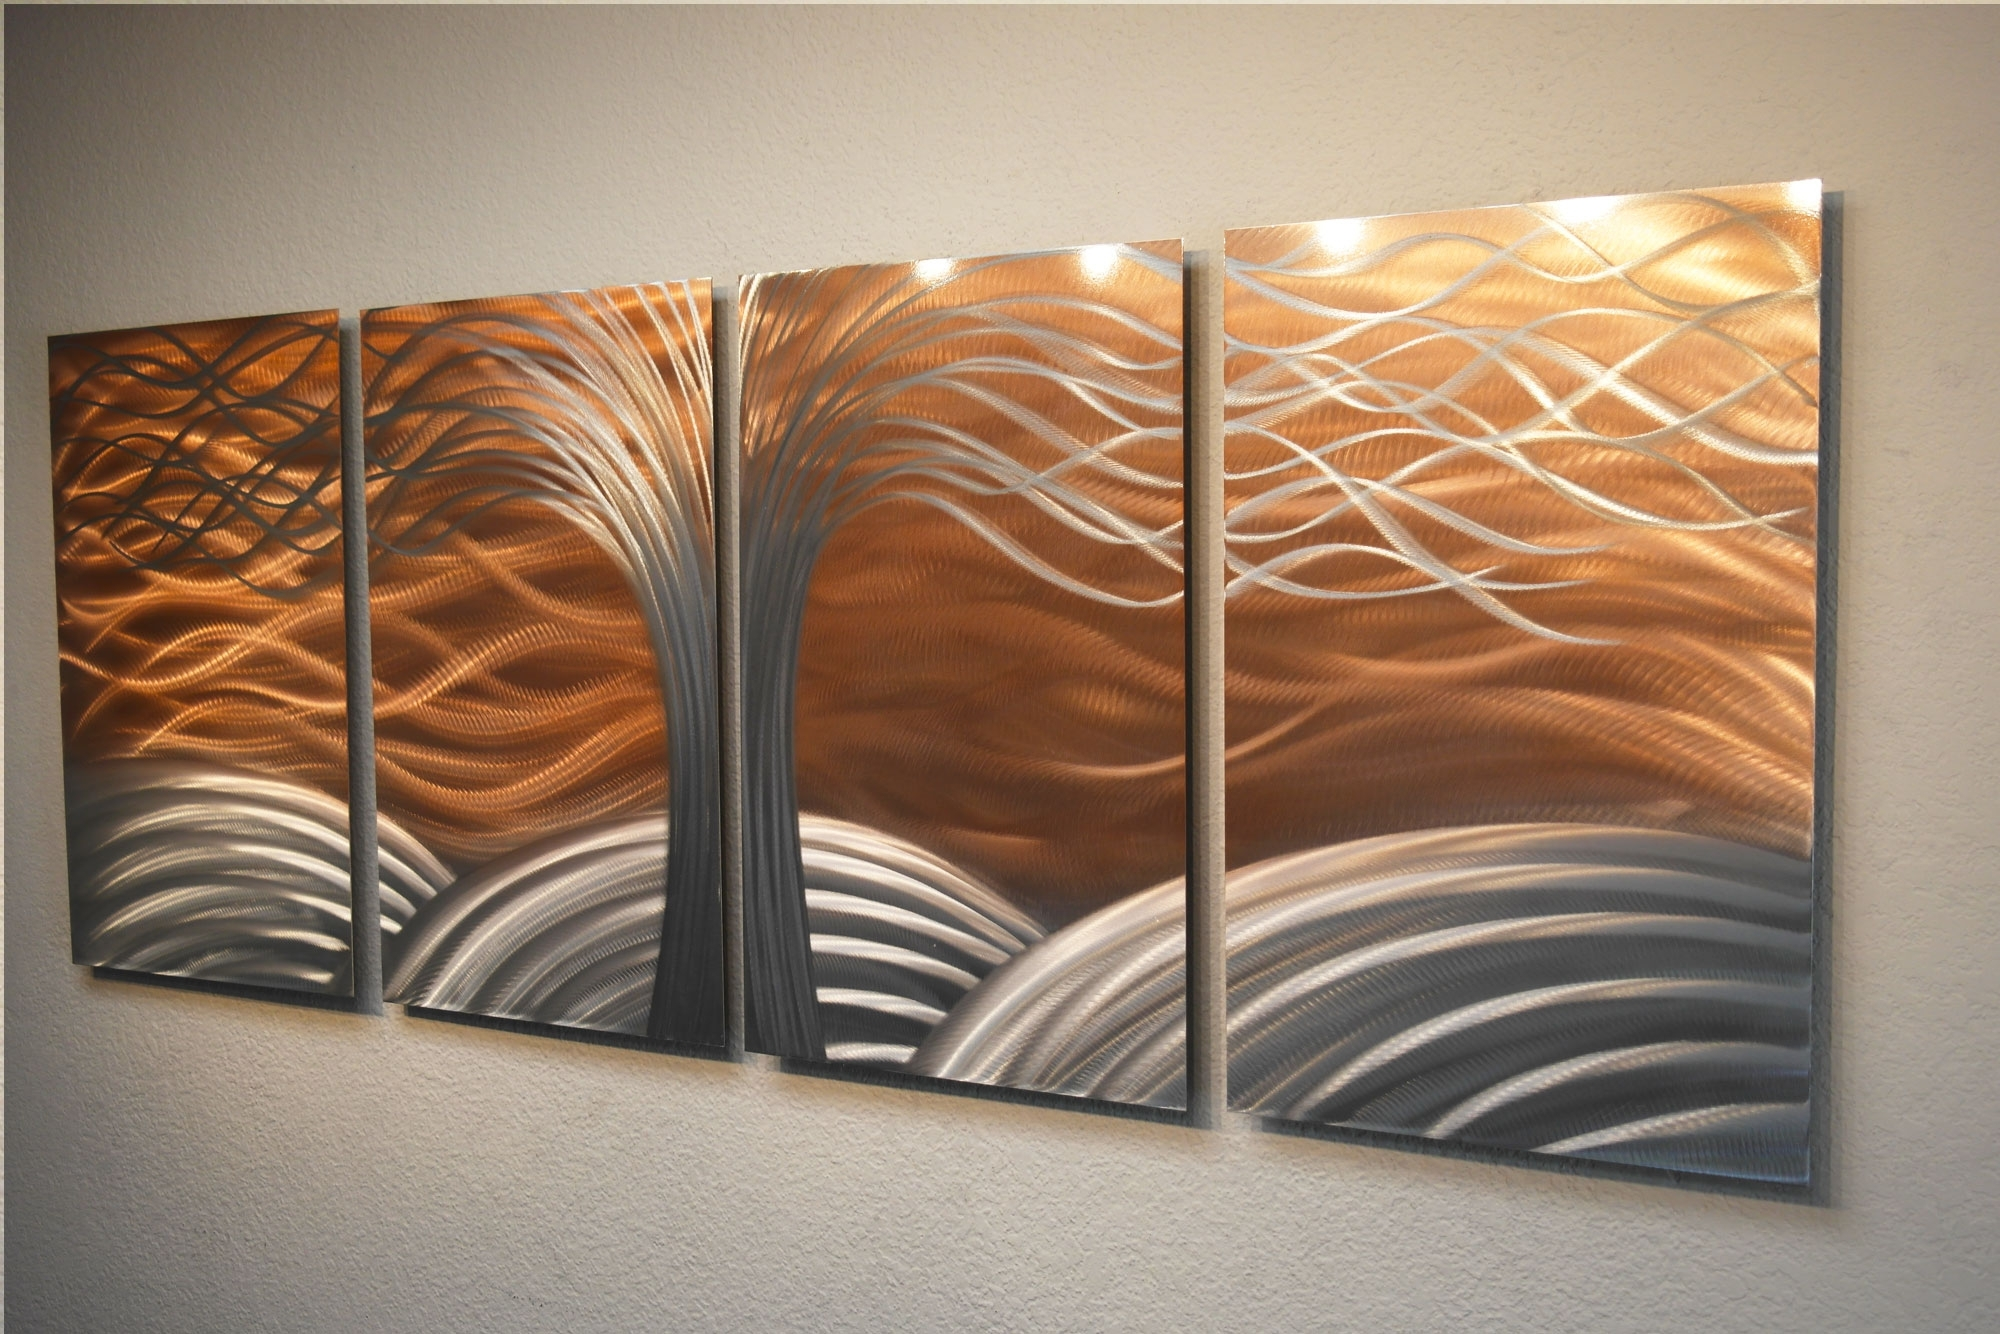 Tree Of Life Bright Copper – Metal Wall Art Abstract Sculpture Within 2018 Abstract Copper Wall Art (View 9 of 20)